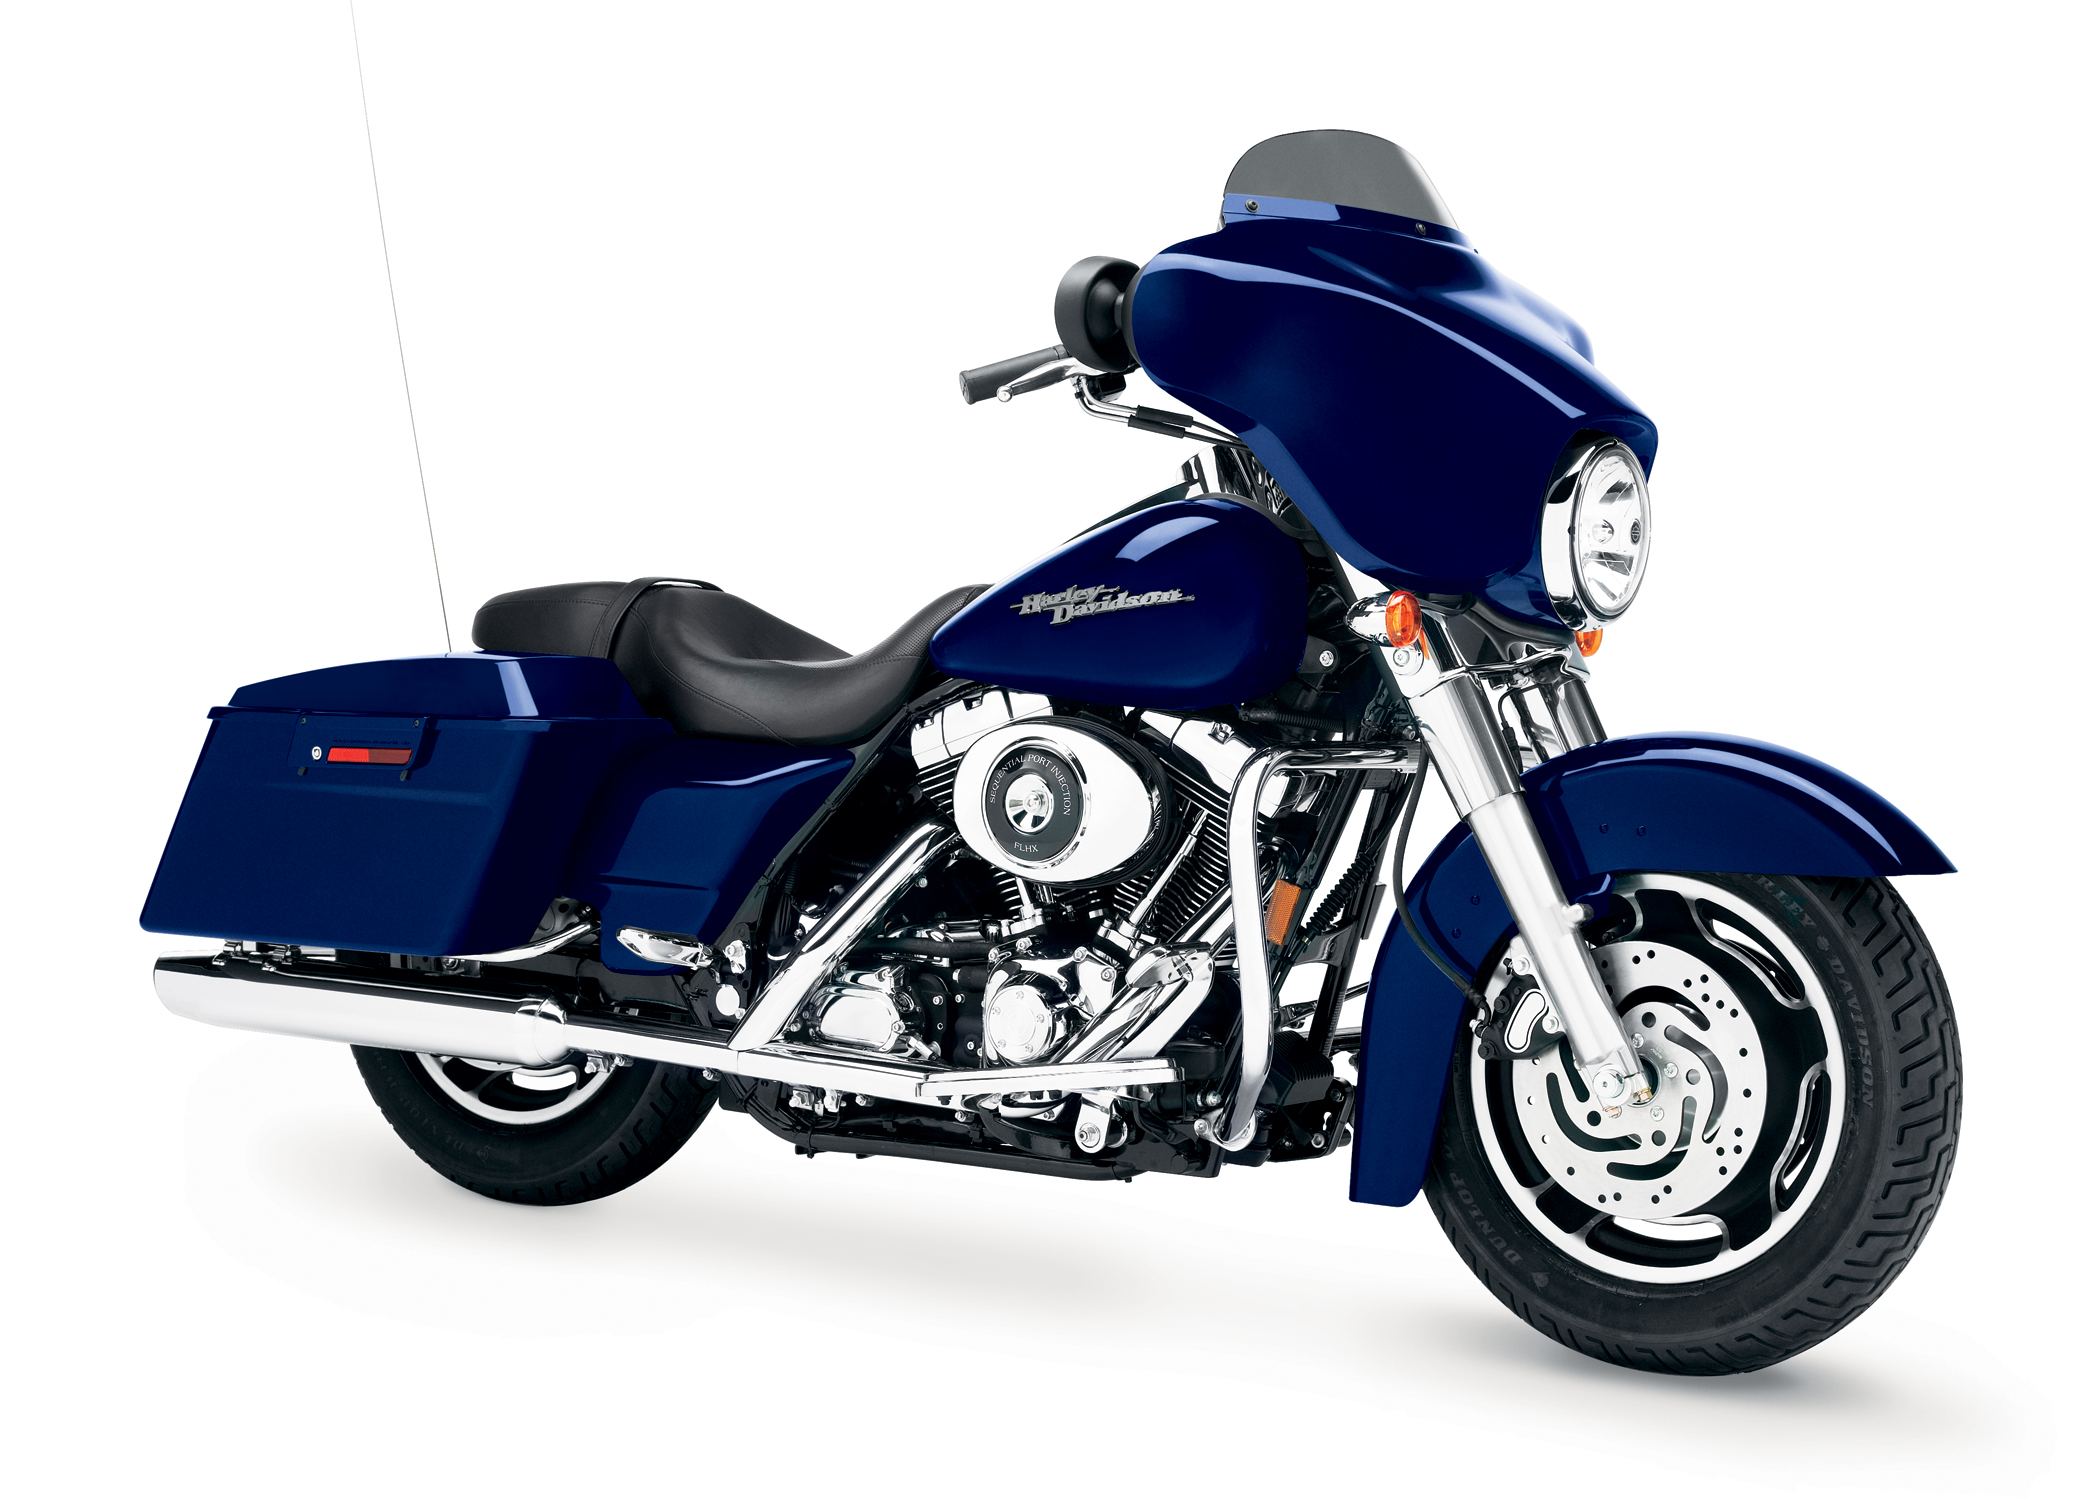 2006 harley-davidson flhx/i street glide review - gallery - top speed